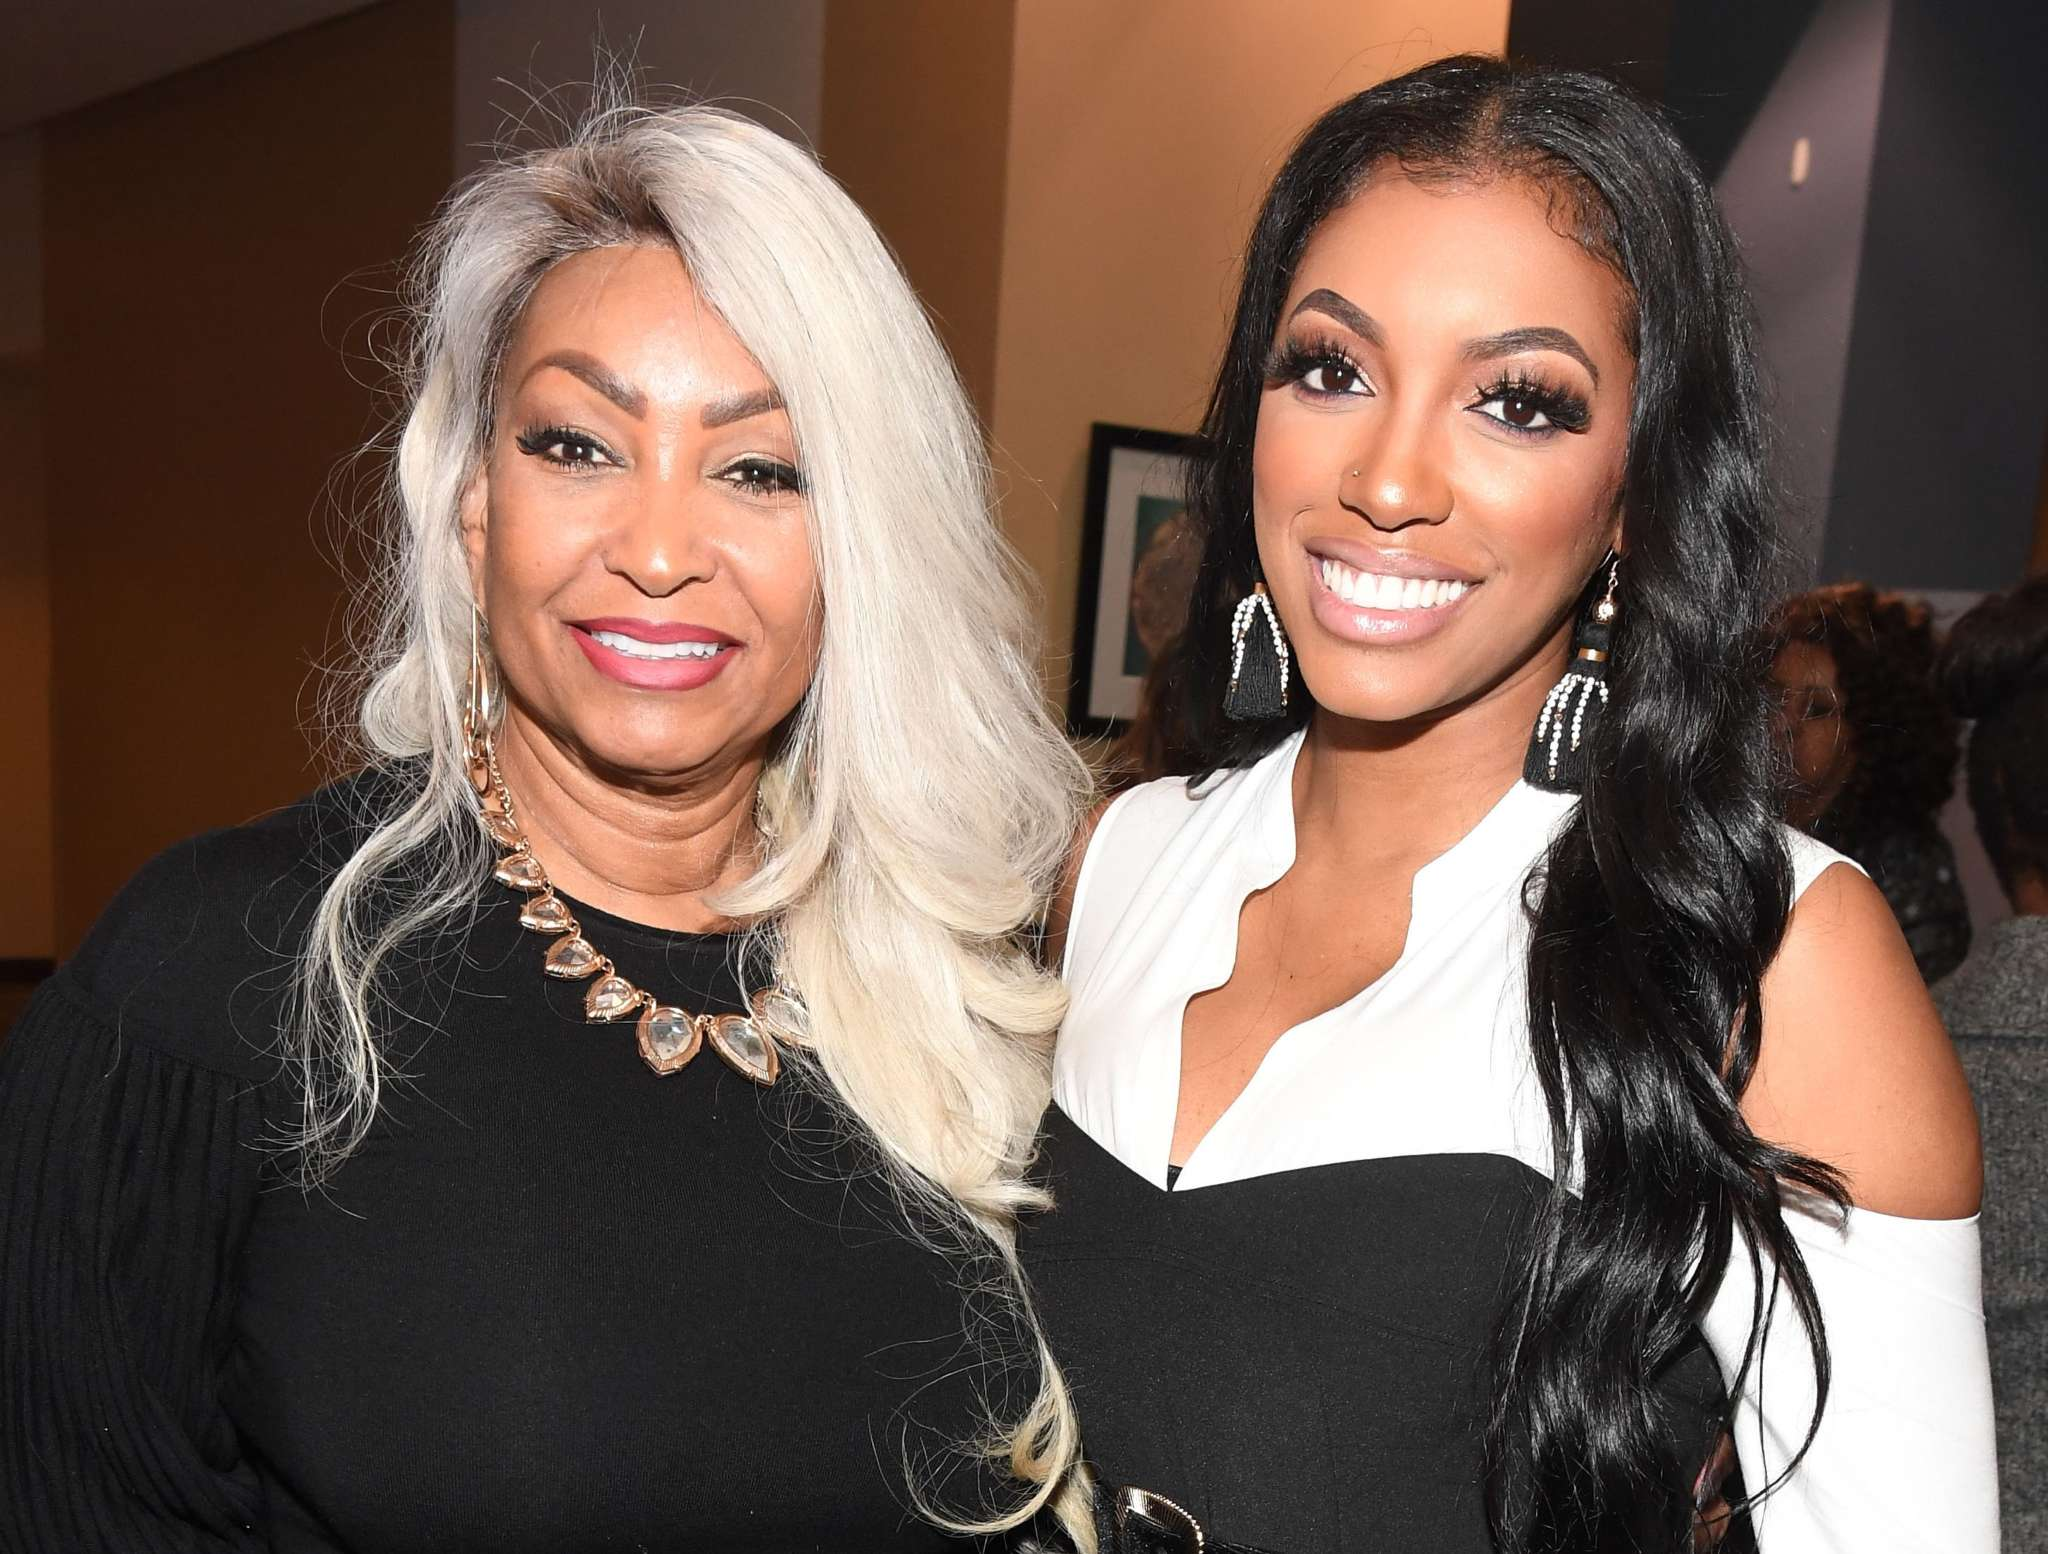 Porsha Williams Seals A Deal With Her Mom, Ms. Diane - Check Out Her Post